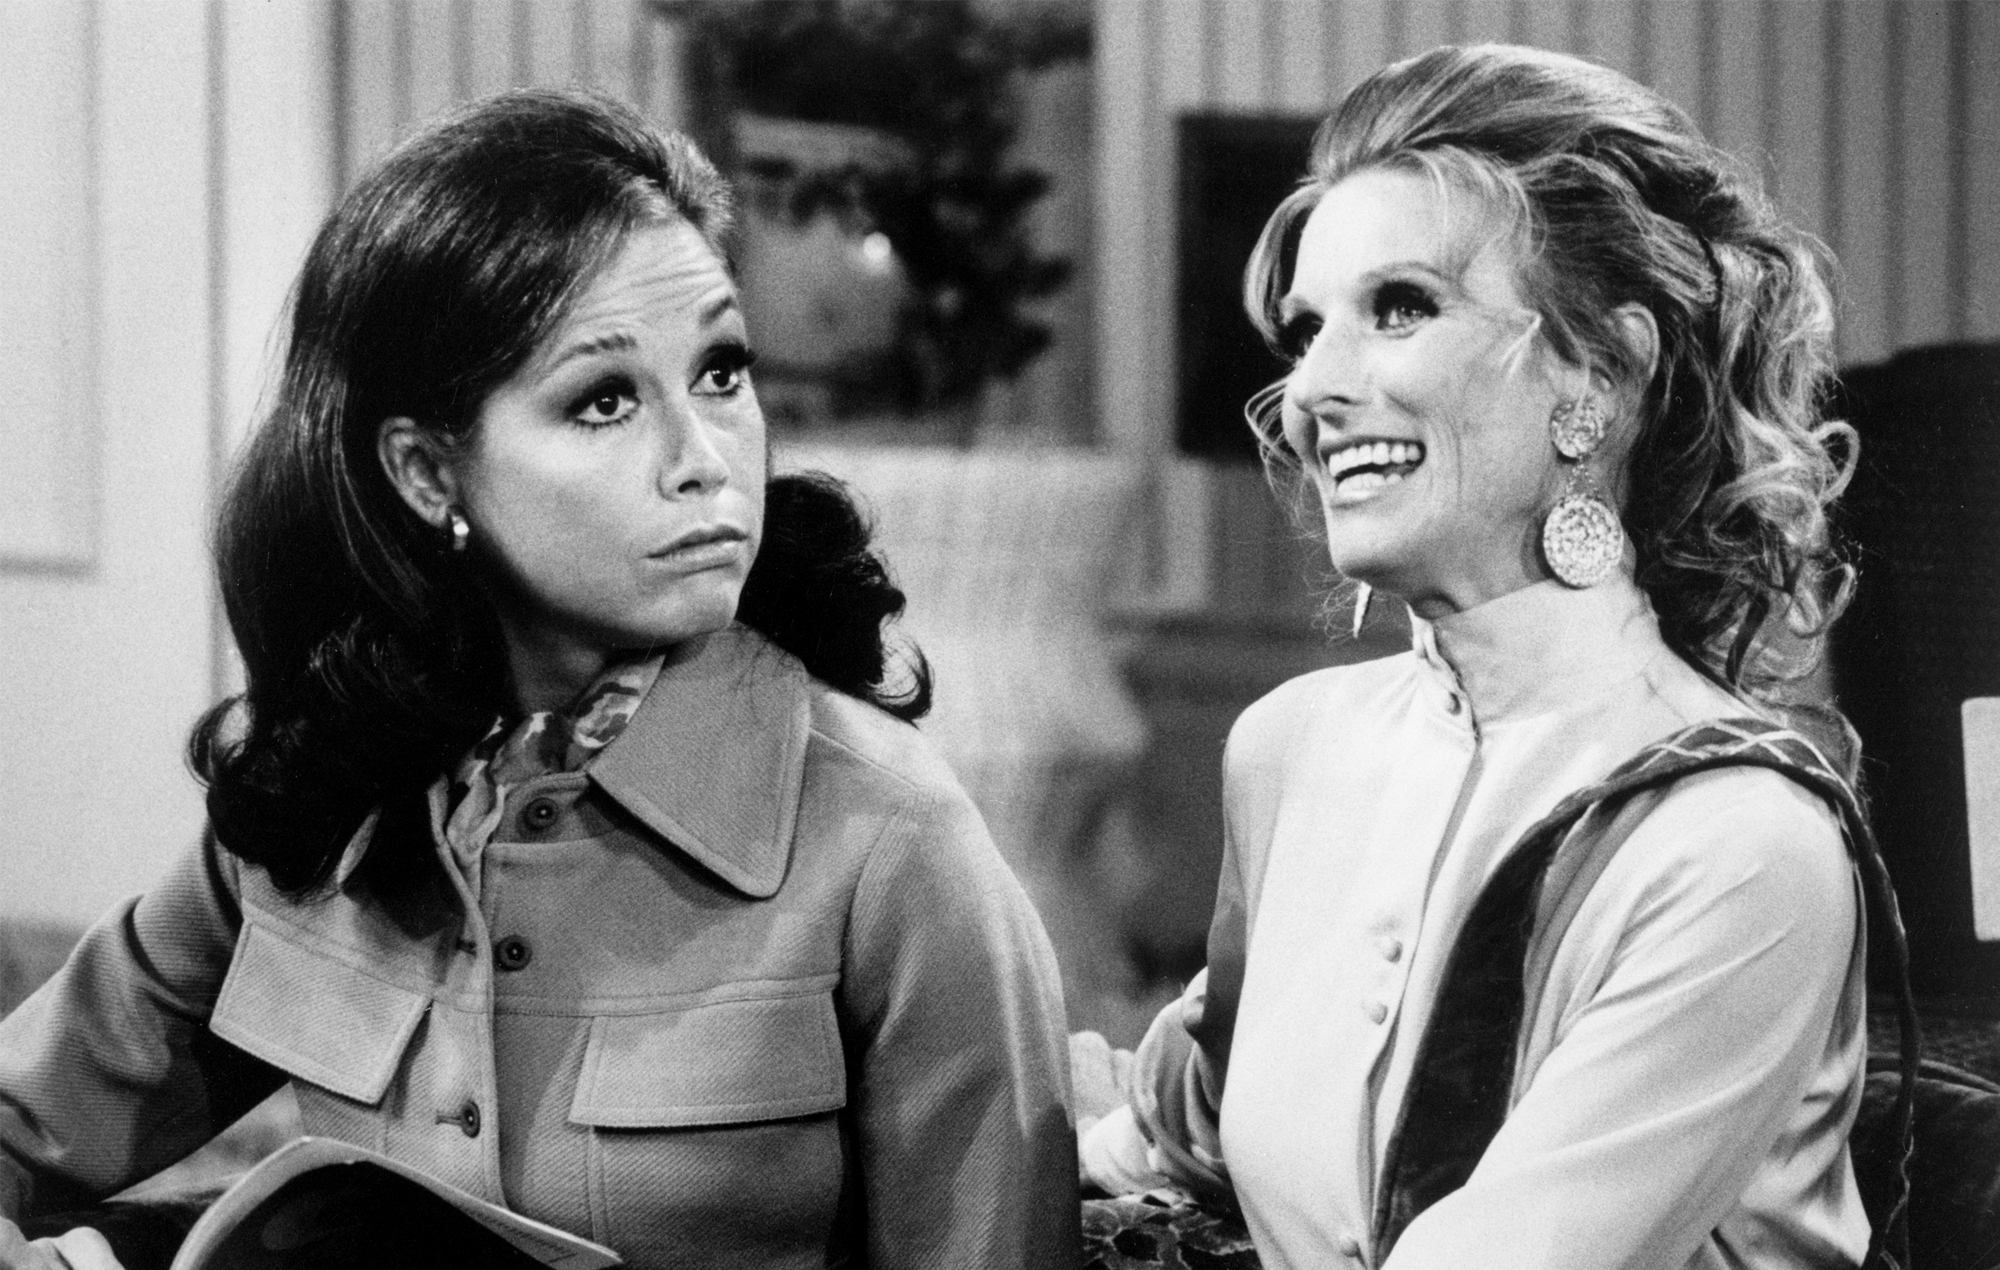 Mary Tyler Moore Show actress Cloris Leachman dead at 94 natural causes